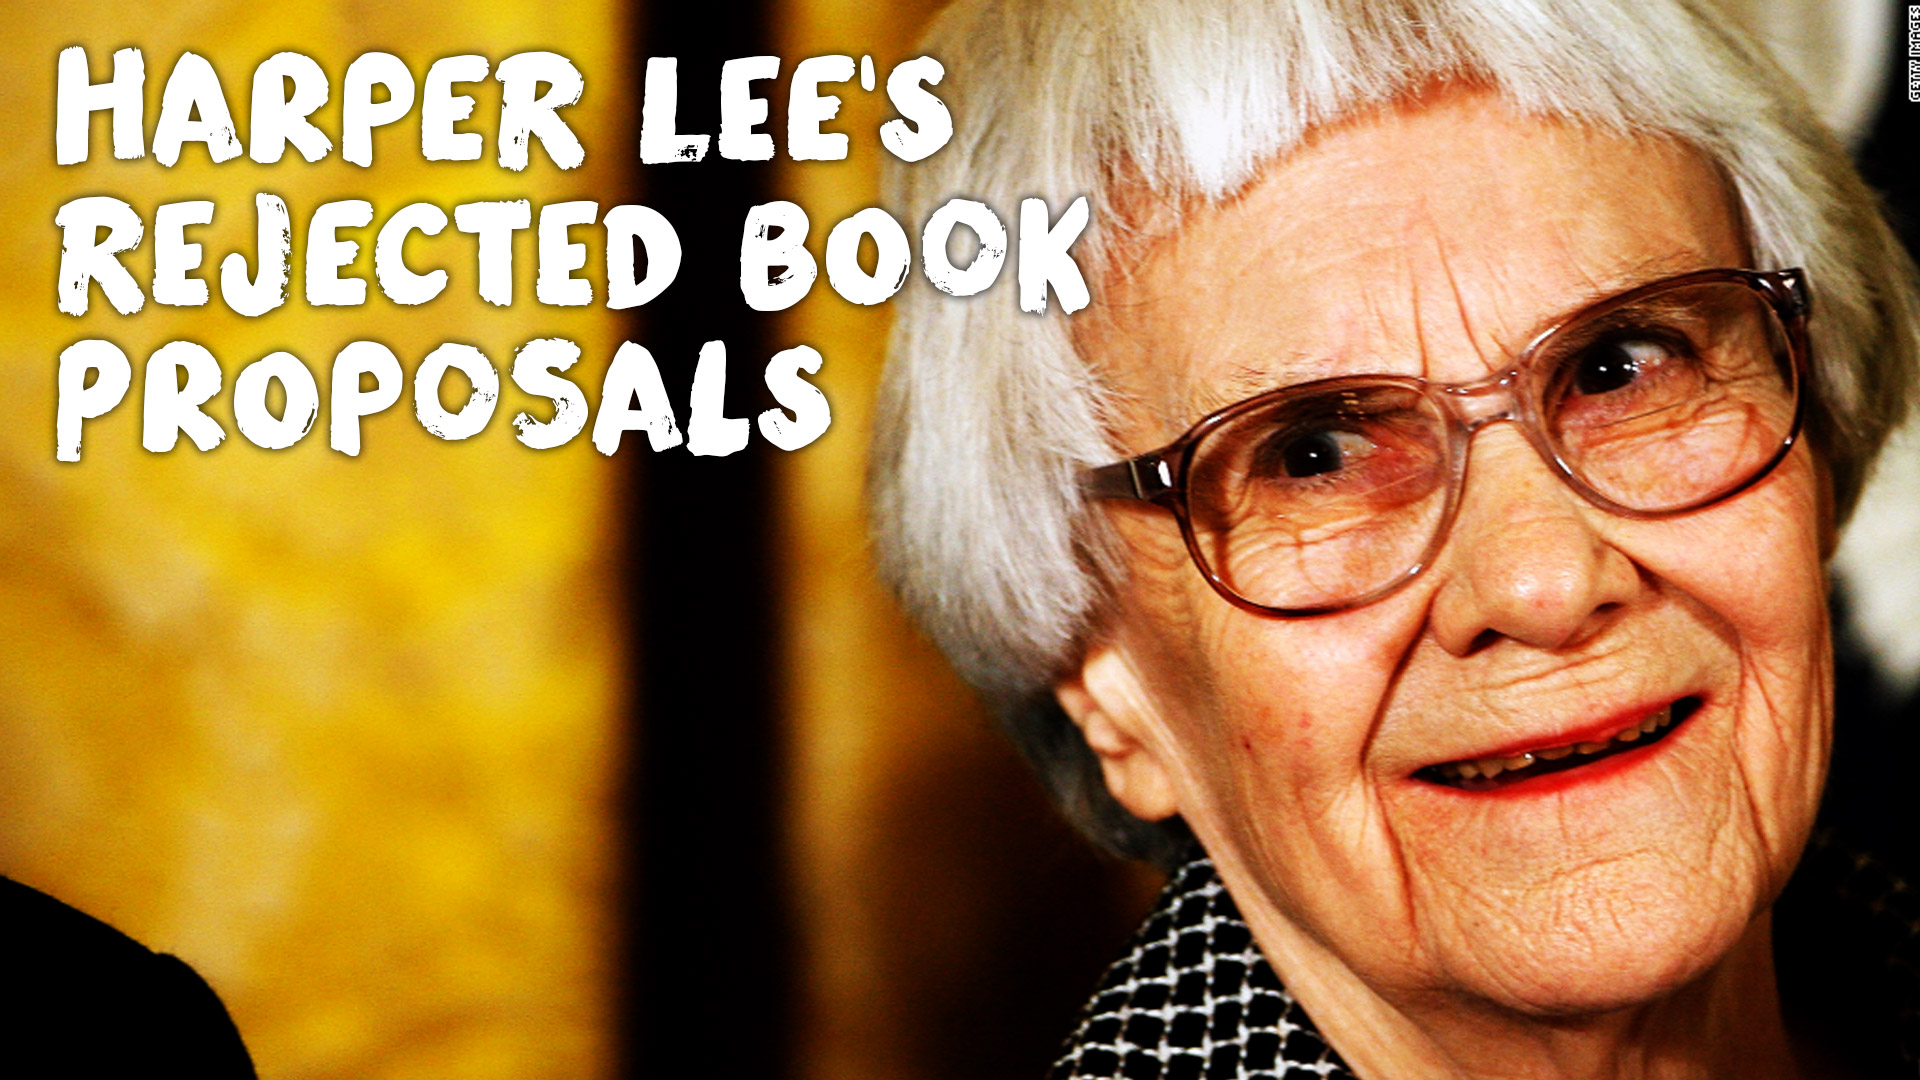 Harper Lee's Rejected Book Proposals